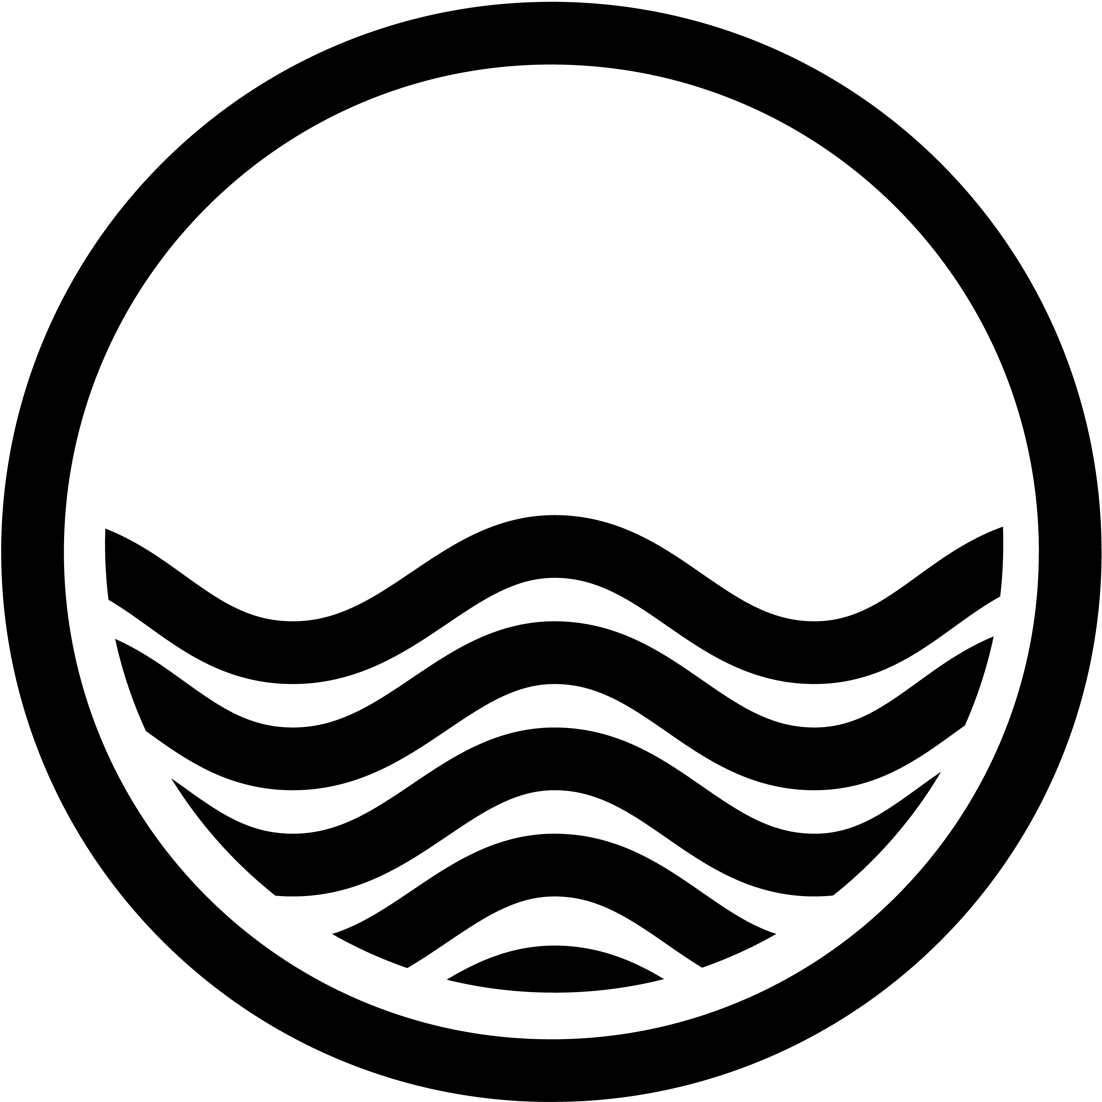 Wave clip black and white. Water waves art free